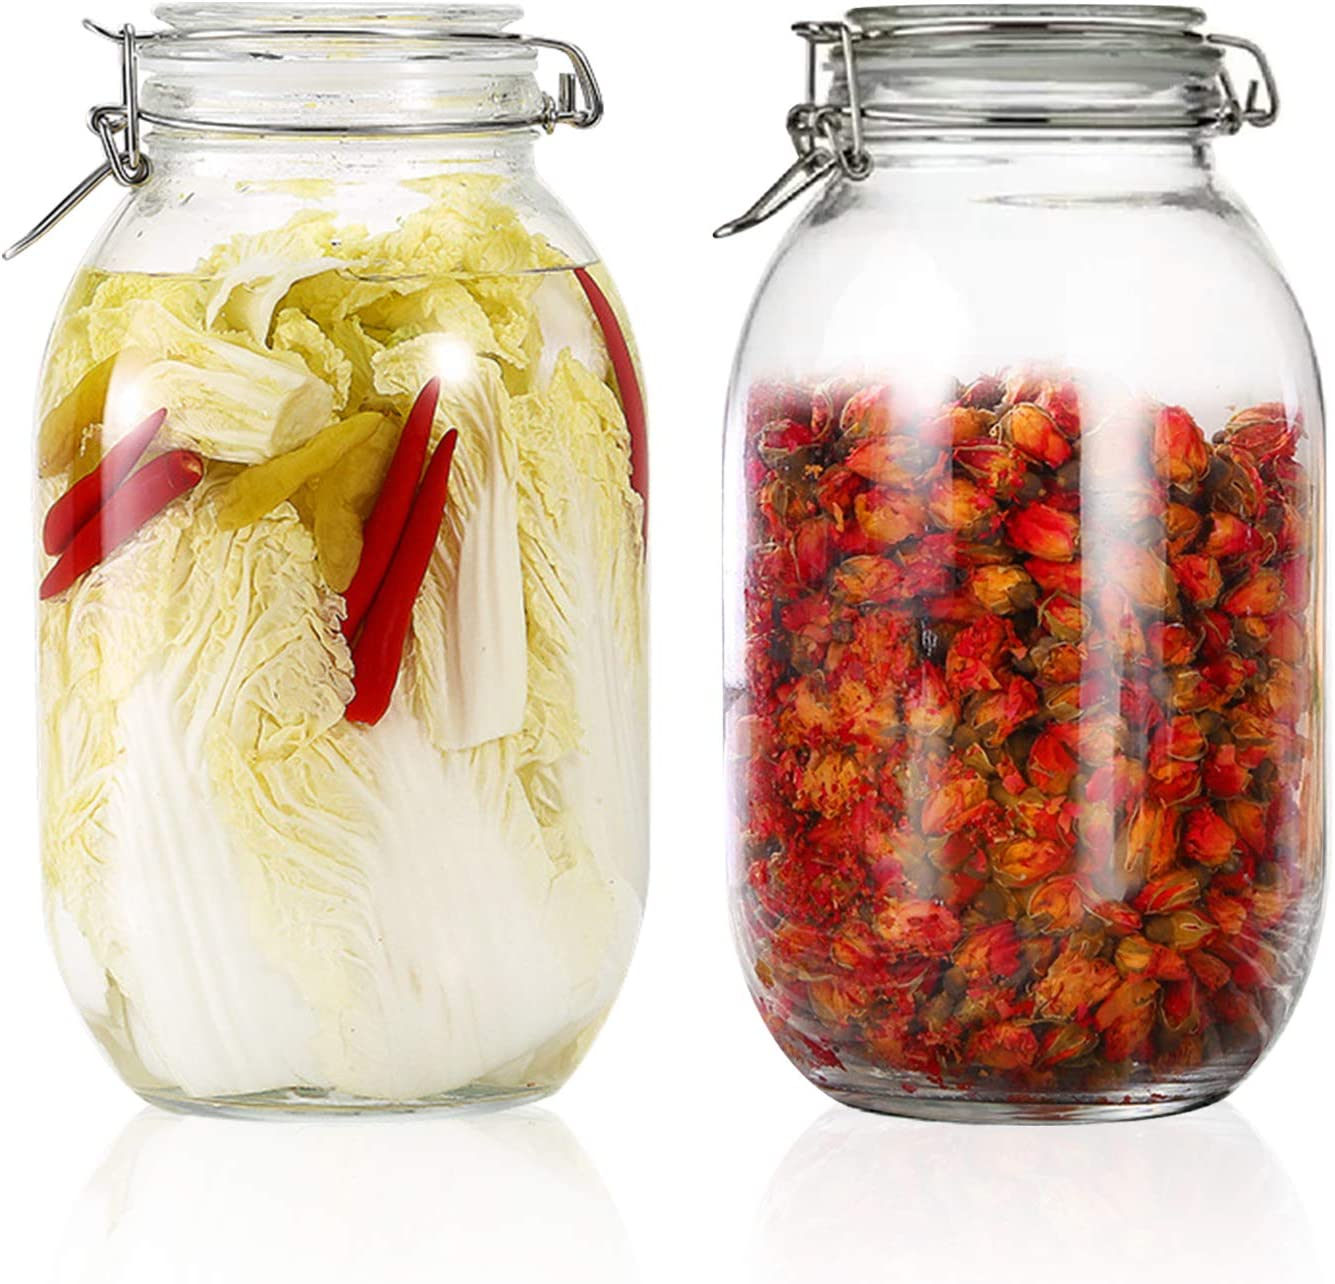 100oz/3000ml Glass Kitchen Storage Canister, Sealed Glass Jars with Lids, Airtight Glass Canister with Hinged Lid, Perfect for Kitchen Canning Cereal/Pasta/Sugar/Beans -Set of 2